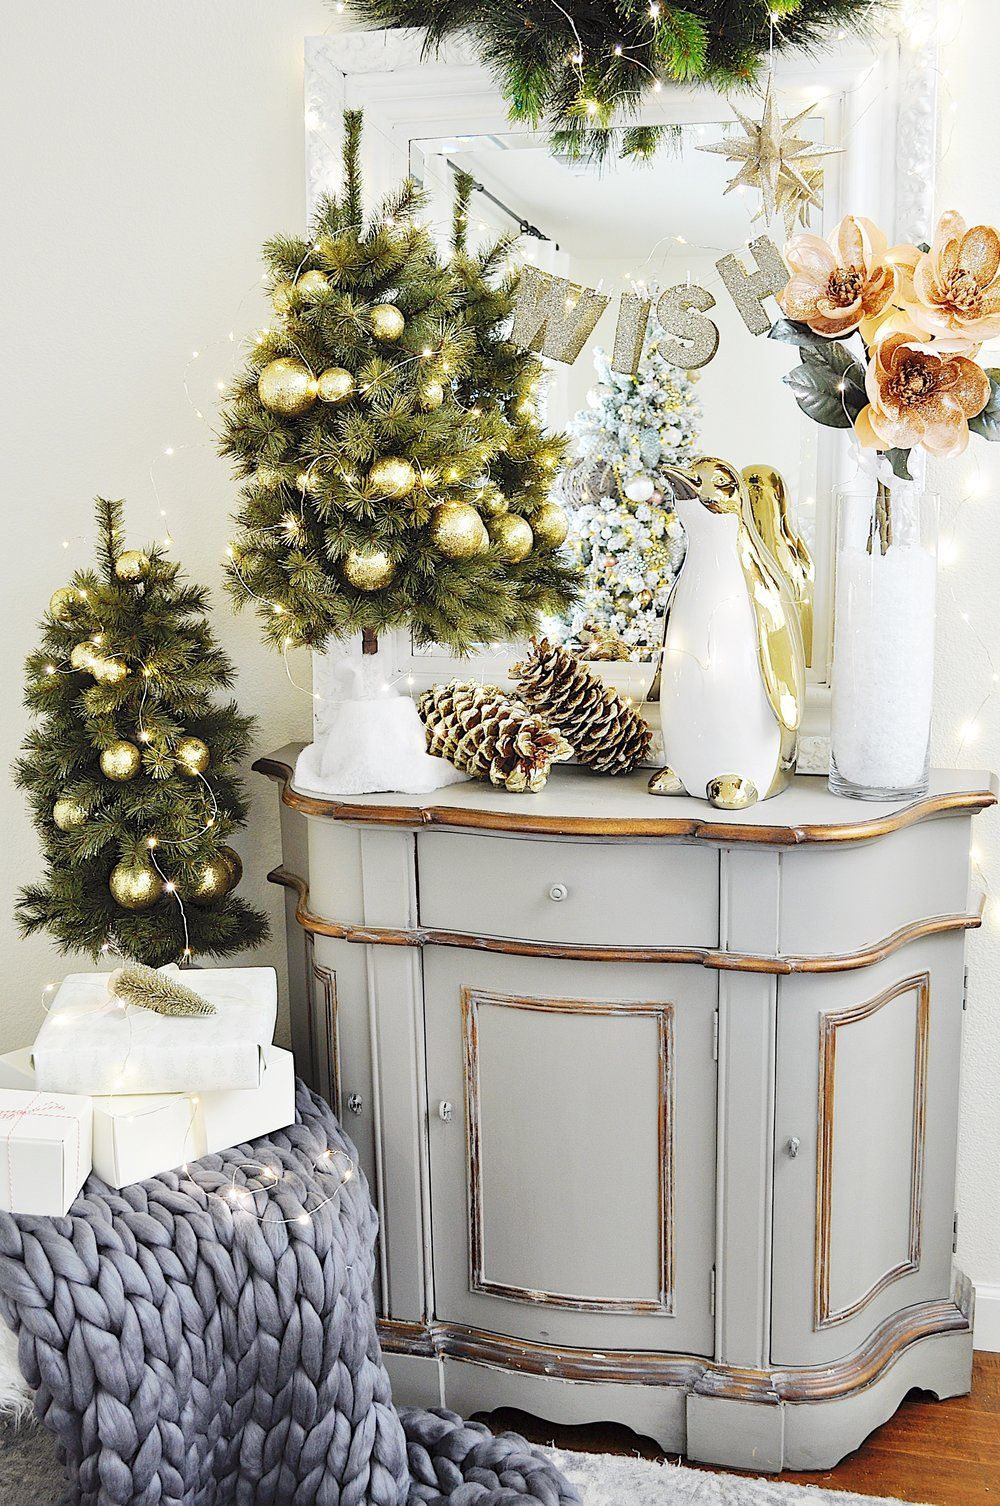 Christmas Home Decorating Ideas For A Beautiful Holiday